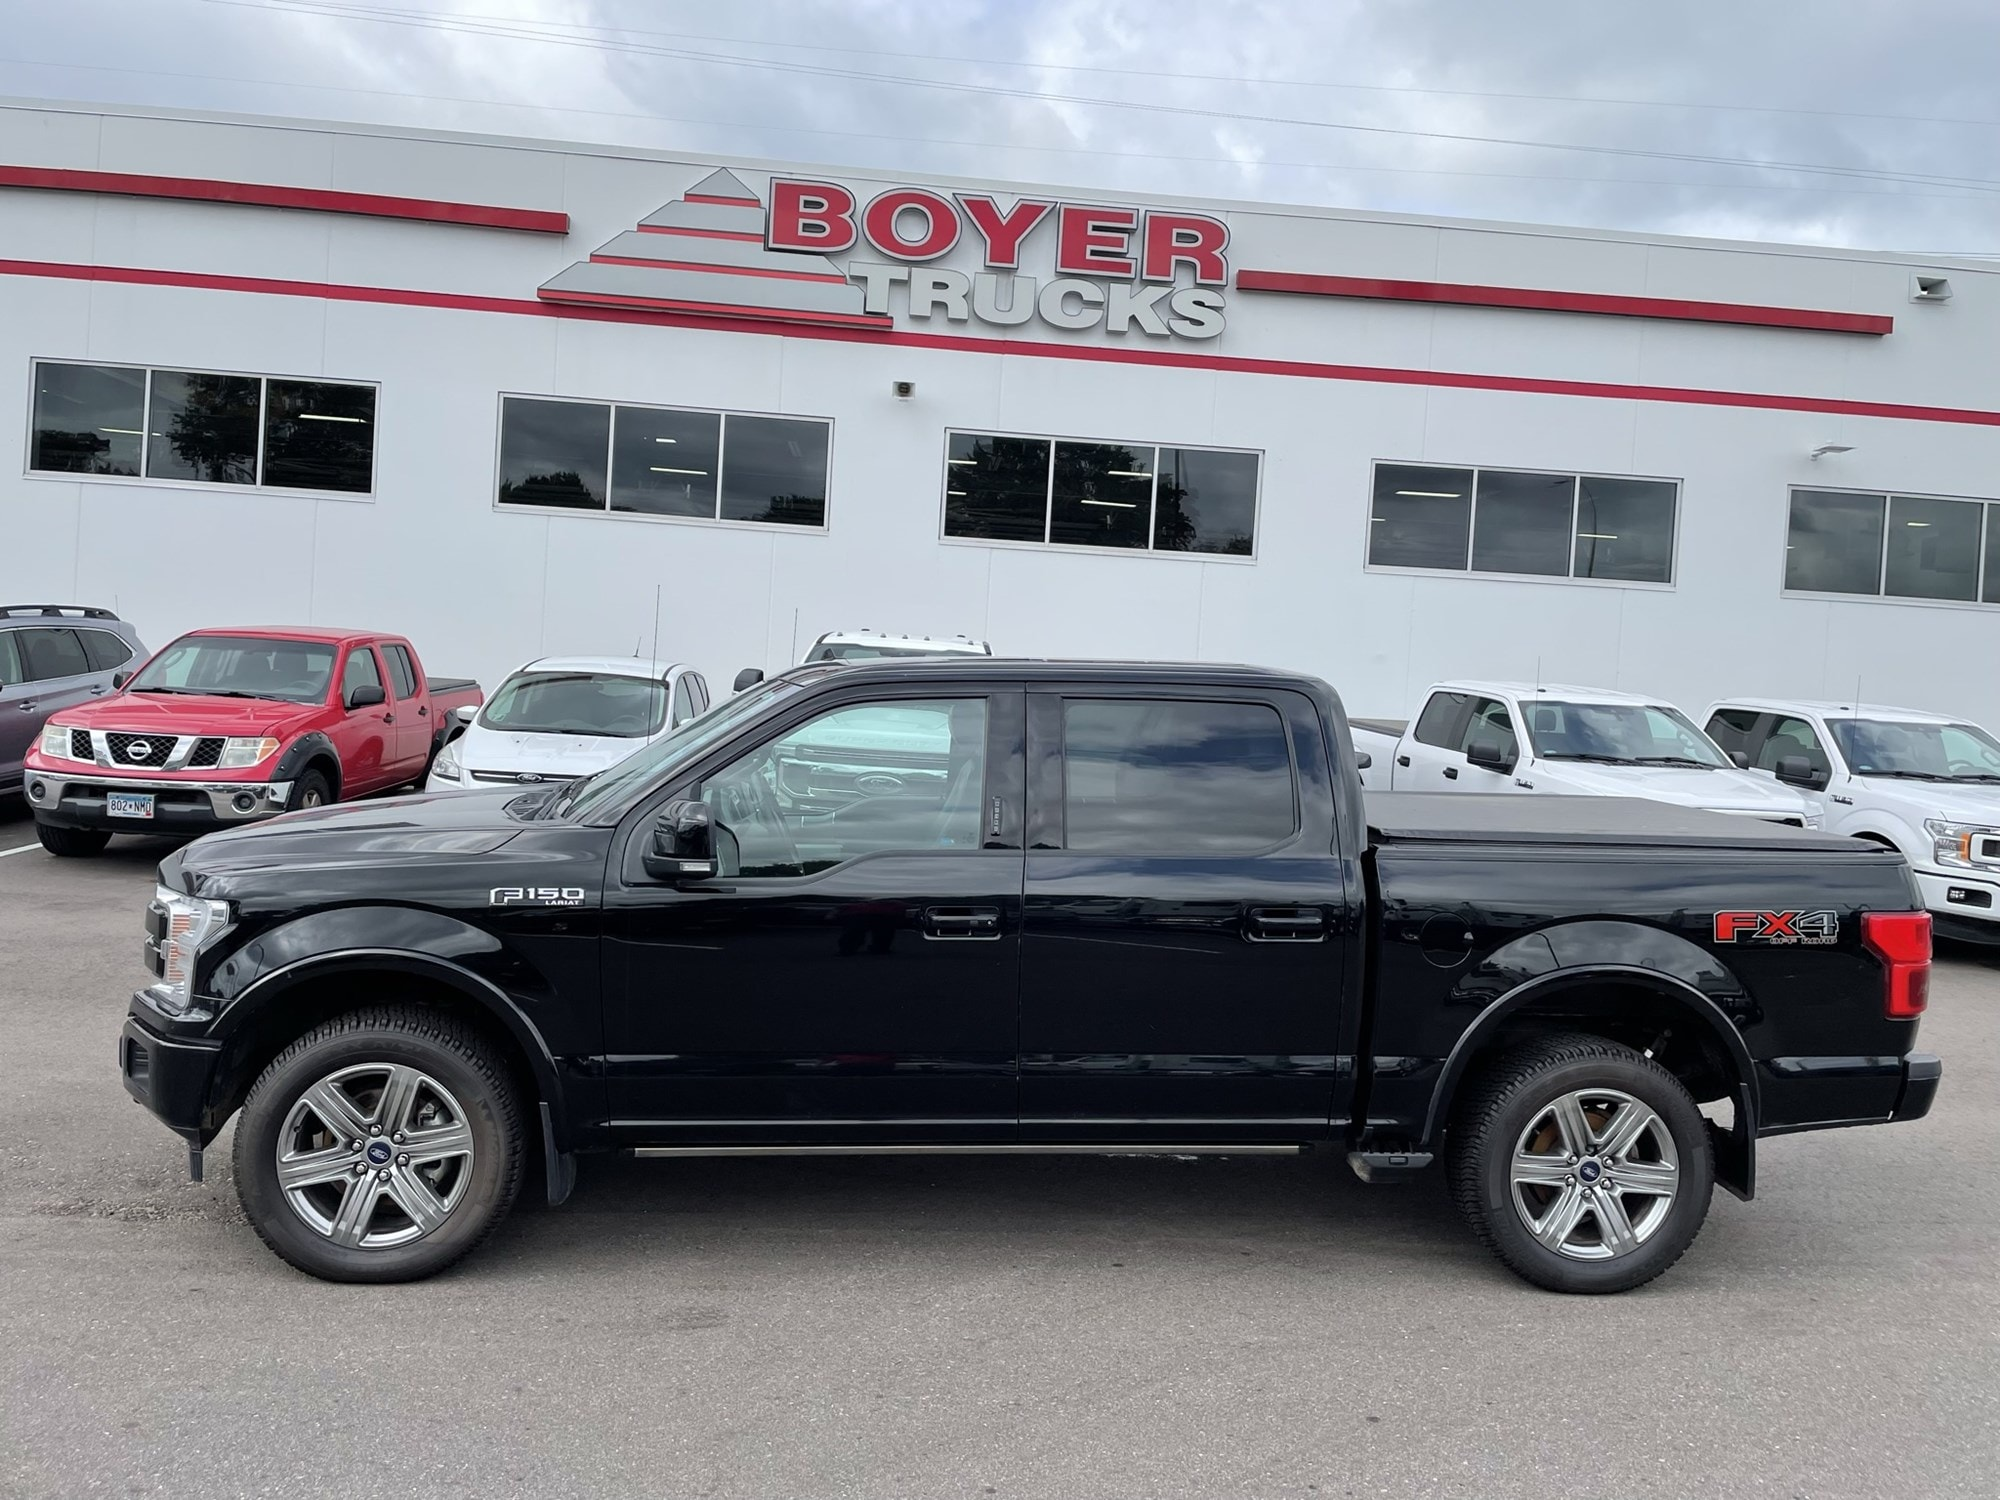 Used 2018 Ford F-150 King Ranch with VIN 1FTEW1EG7JFA82159 for sale in Minneapolis, Minnesota